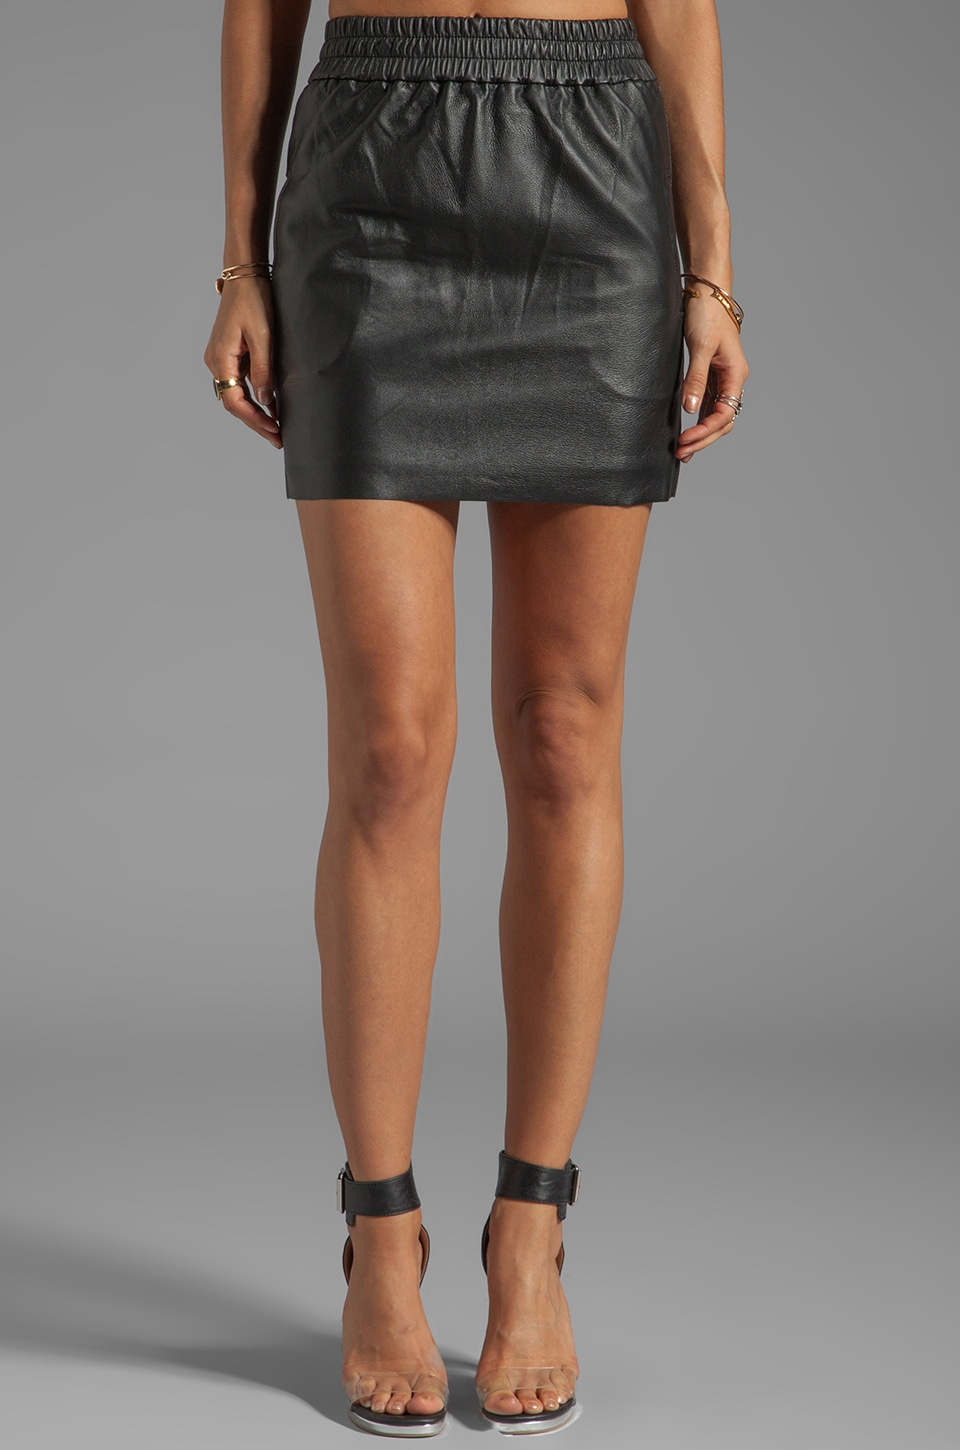 NICHOLAS Leather Track Skirt in Black